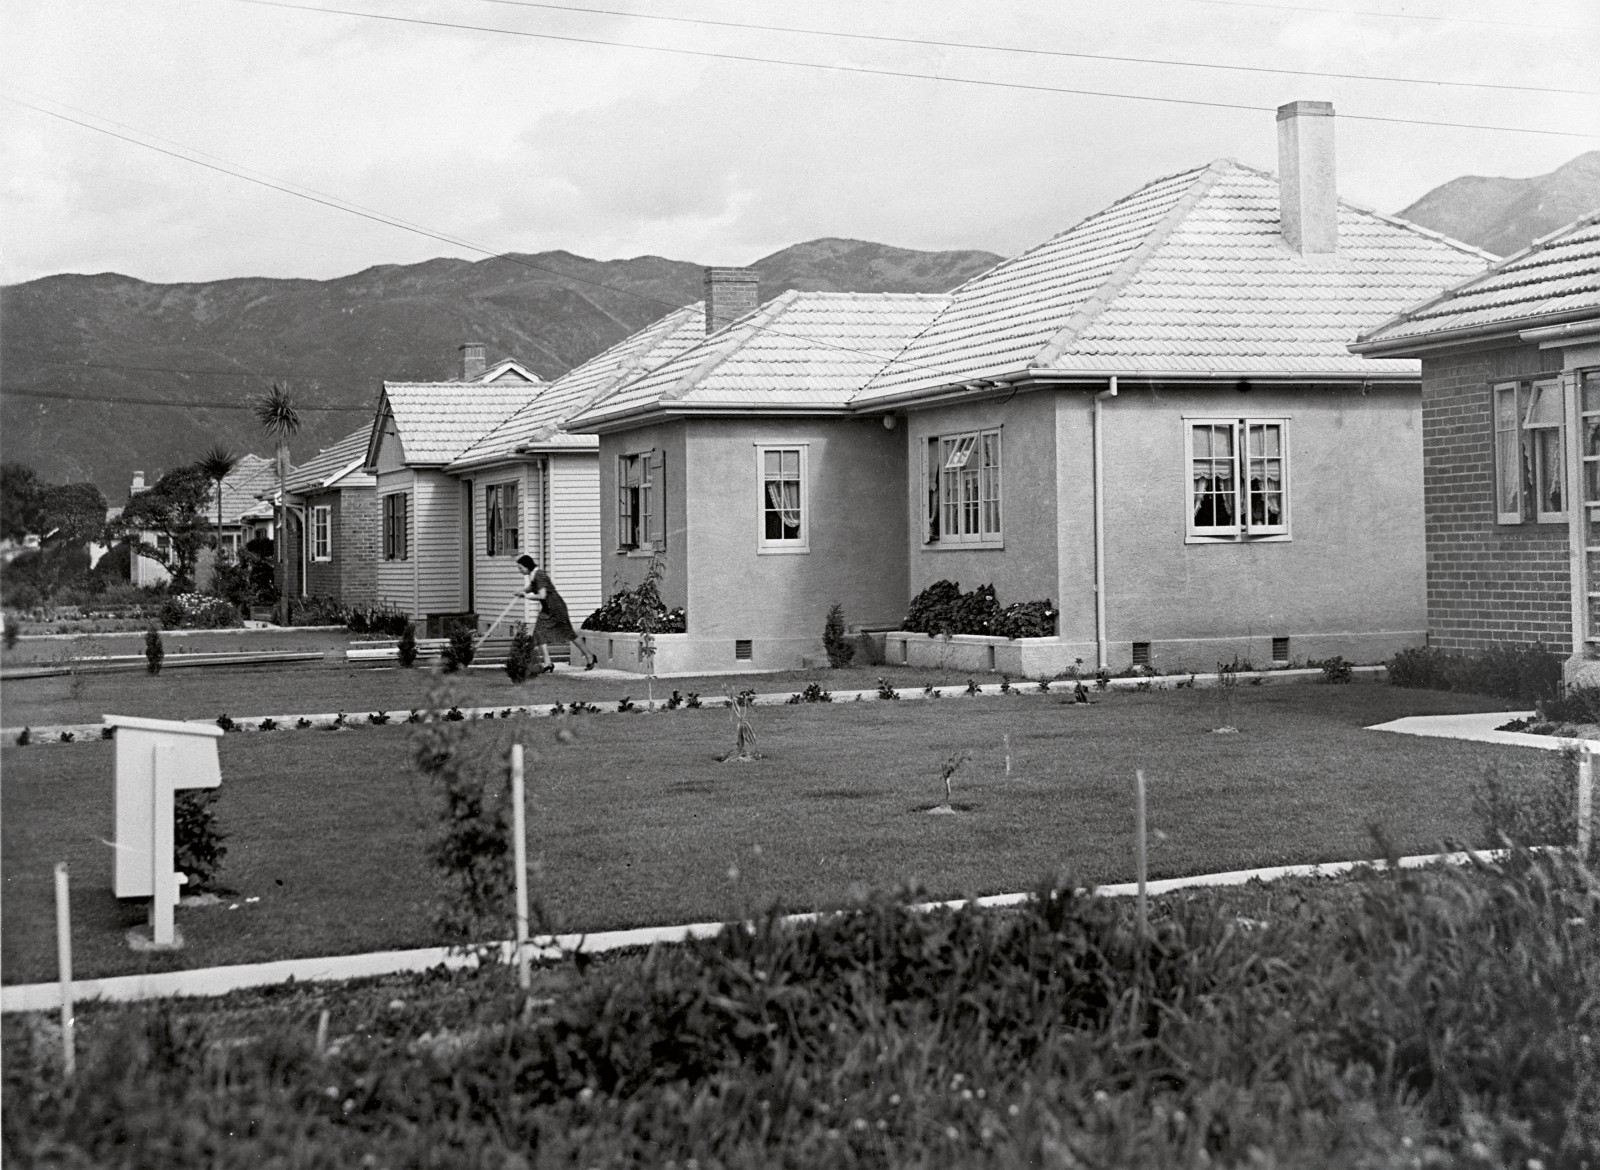 This cluster of new state houses photographed in Mahoe Street, Lower Hutt in the late 1930s, illustrates some of the principles of the day, namely that each house was to look distinctive and there was to be plenty of space for lawns and gardens. Sadly, later state houses often departed from those worthy guidelines.